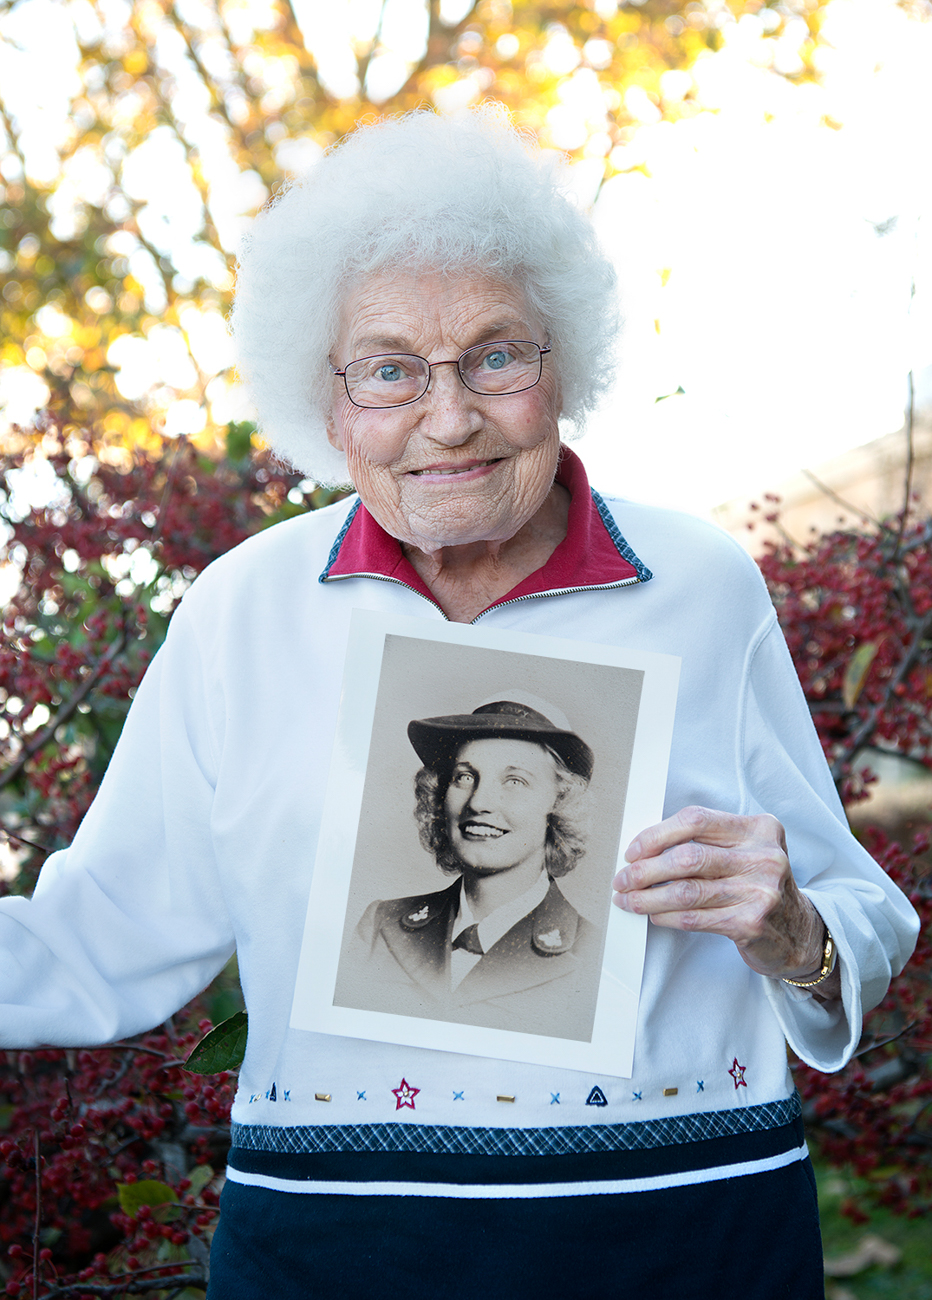 "RUTH HARTMAN / She volunteered in 1943 because, according to her, ""it was the patriotic thing to do."" Read more of her story at facebook.com/theygaveitall. / Image: Patrick McCue // Published: 1.29.17"